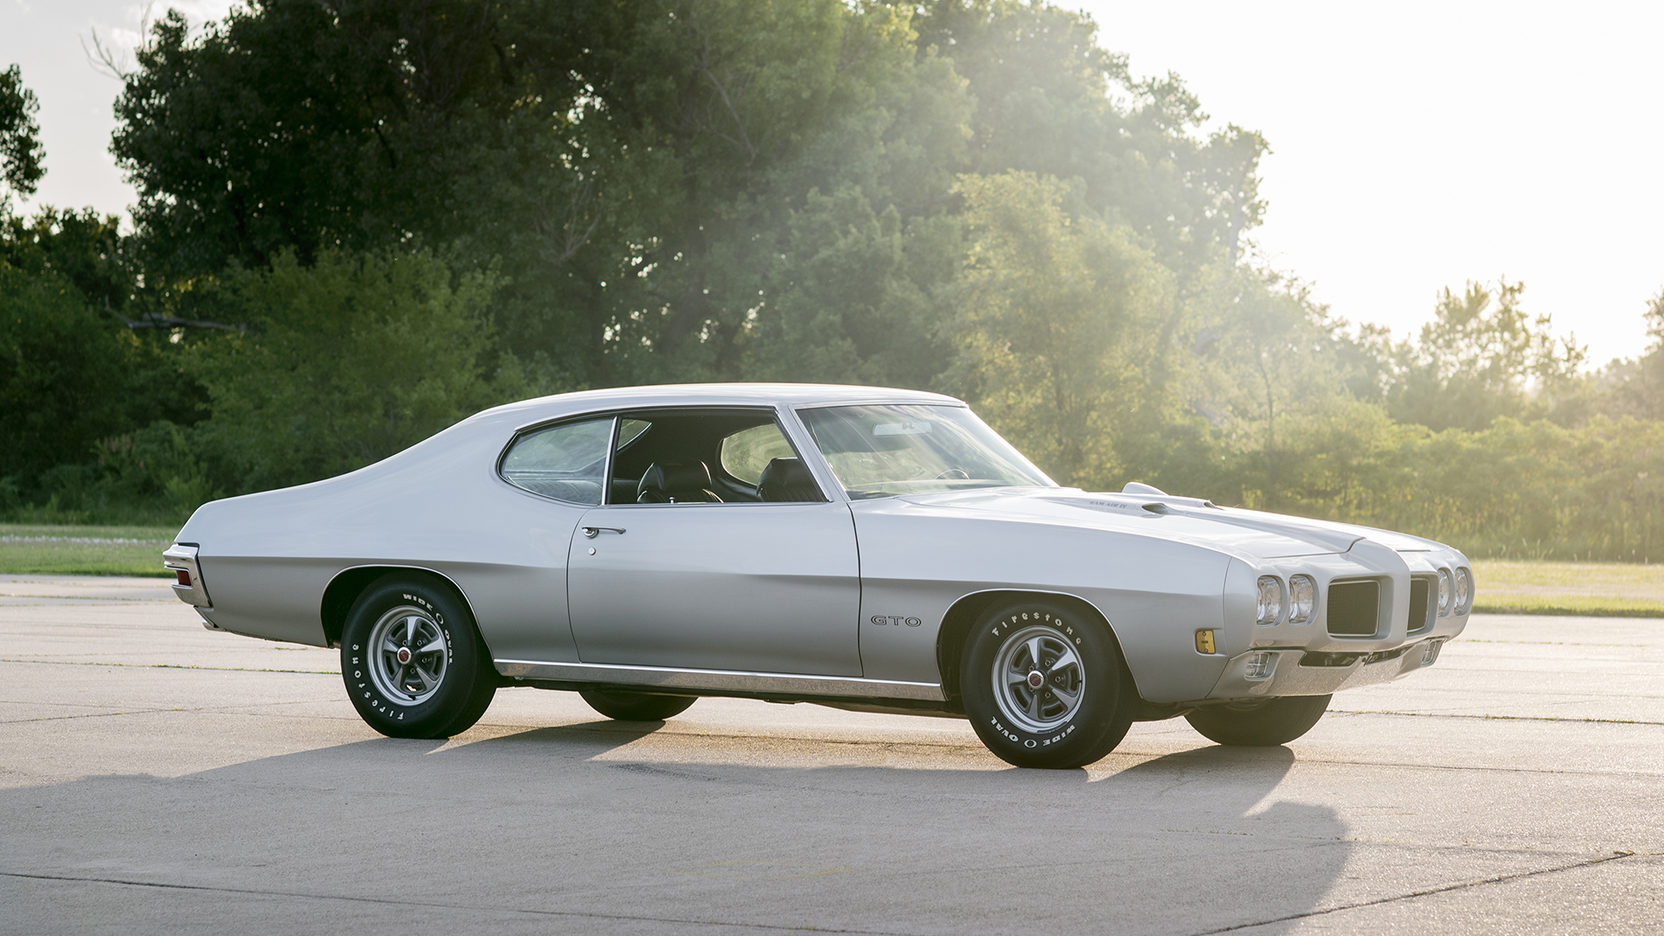 1970 Pontiac GTO Ram Air IV 3/4 passenger light beams